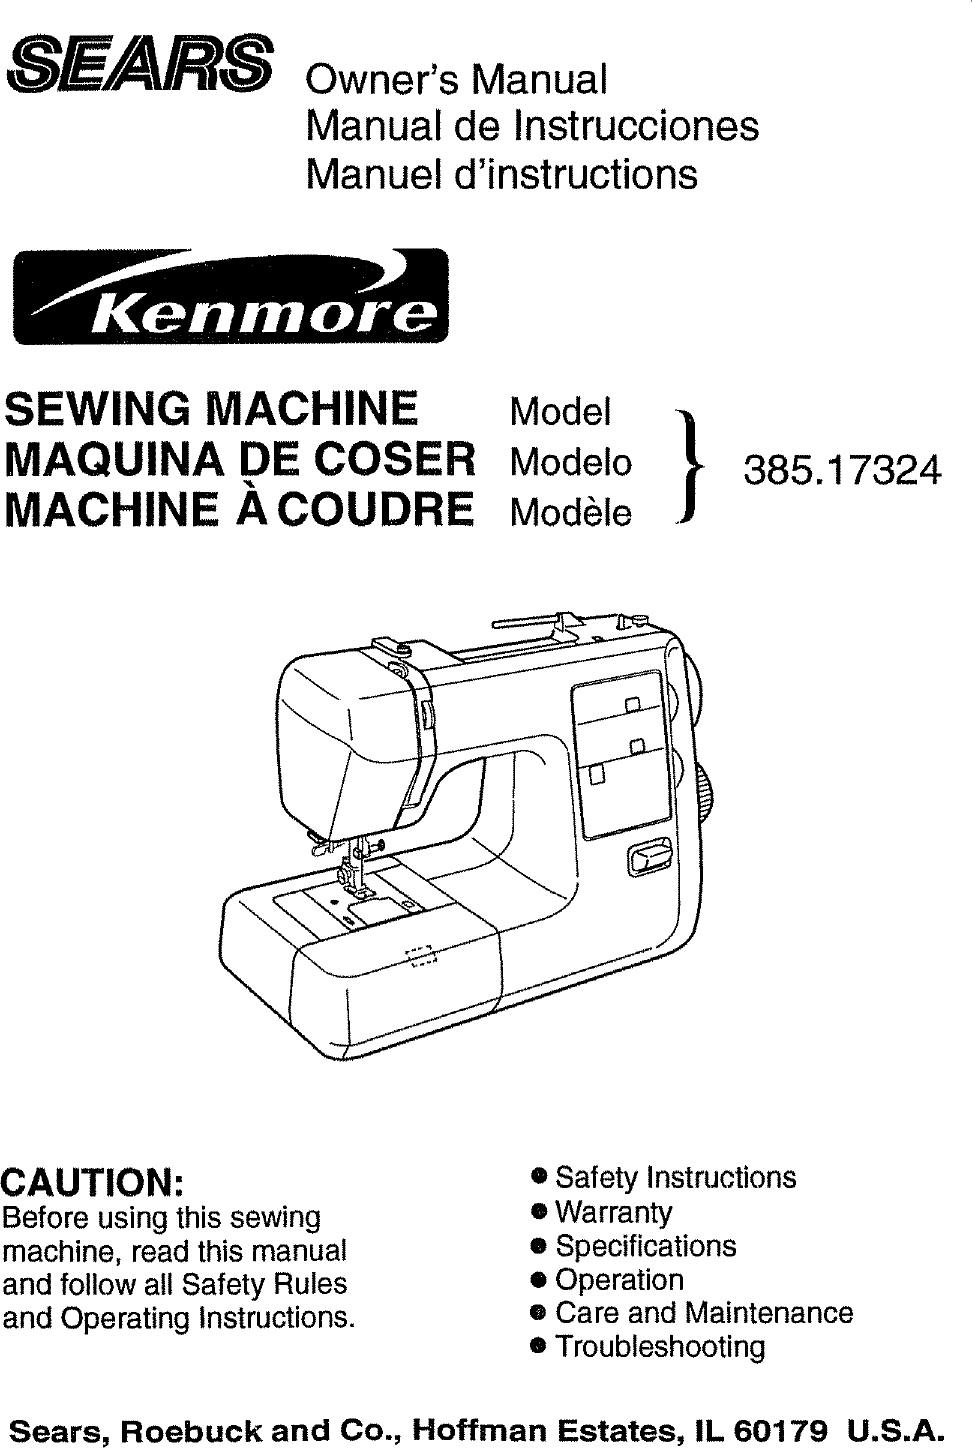 Kenmore 38517324990 User Manual Sewing Machine Manuals And Guides L0804195